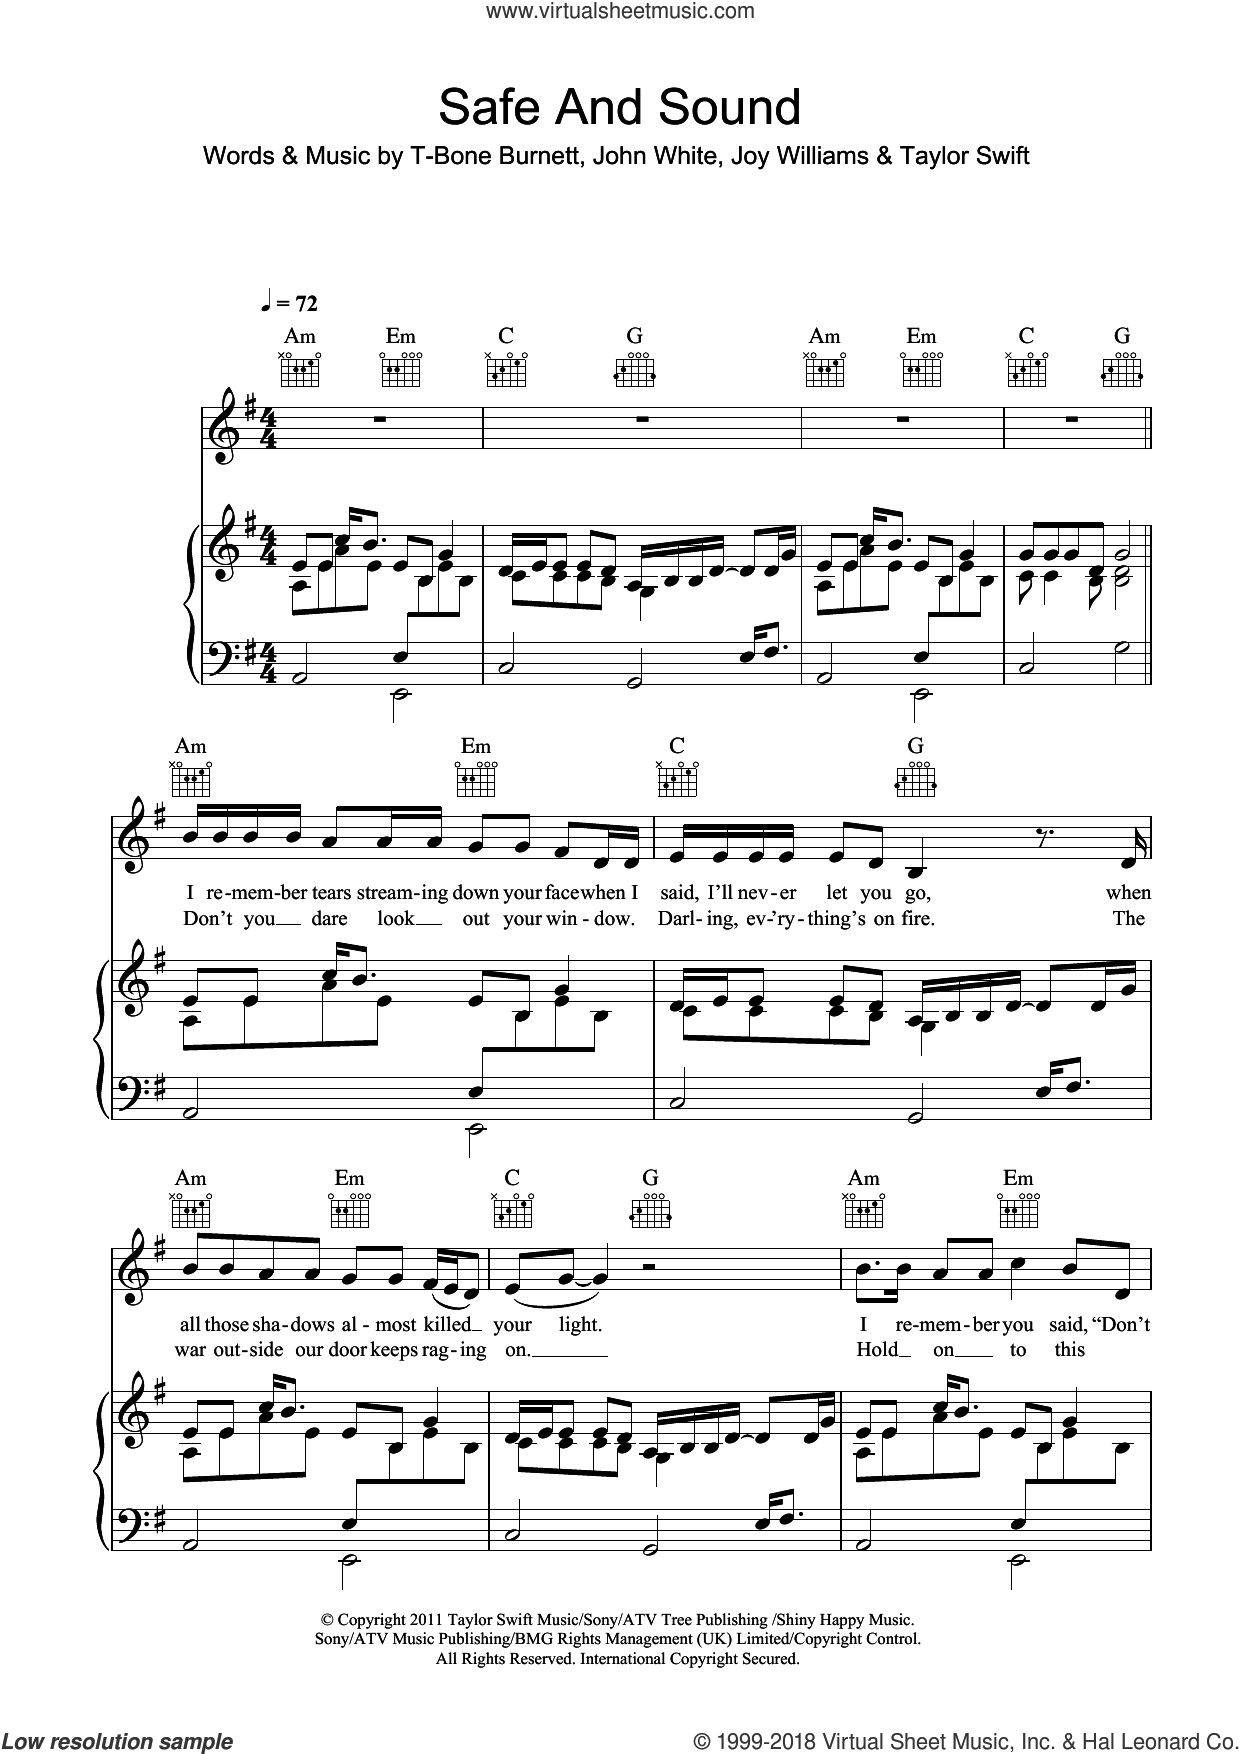 Safe And Sound sheet music for voice, piano or guitar by T-Bone Burnett